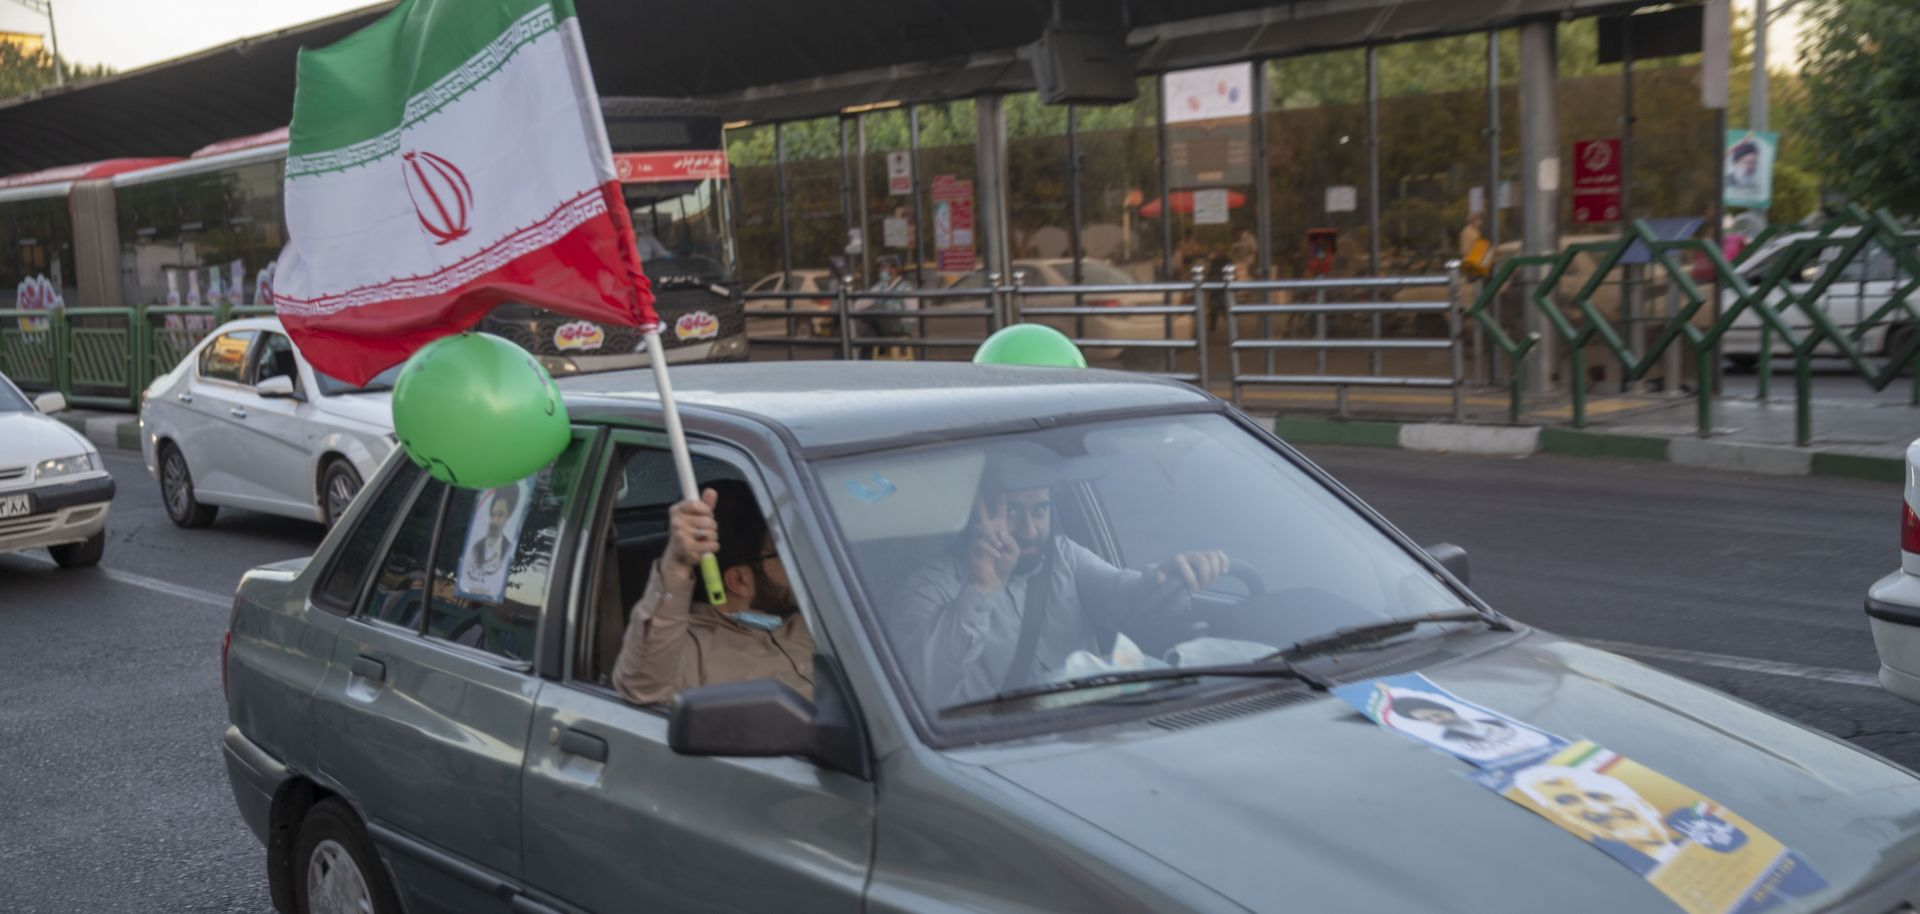 Supporters of Iranian presidential candidate Ebrahim Raisi hold an Iranian flag out of a car window on a street in Tehran on June 11, 2021.